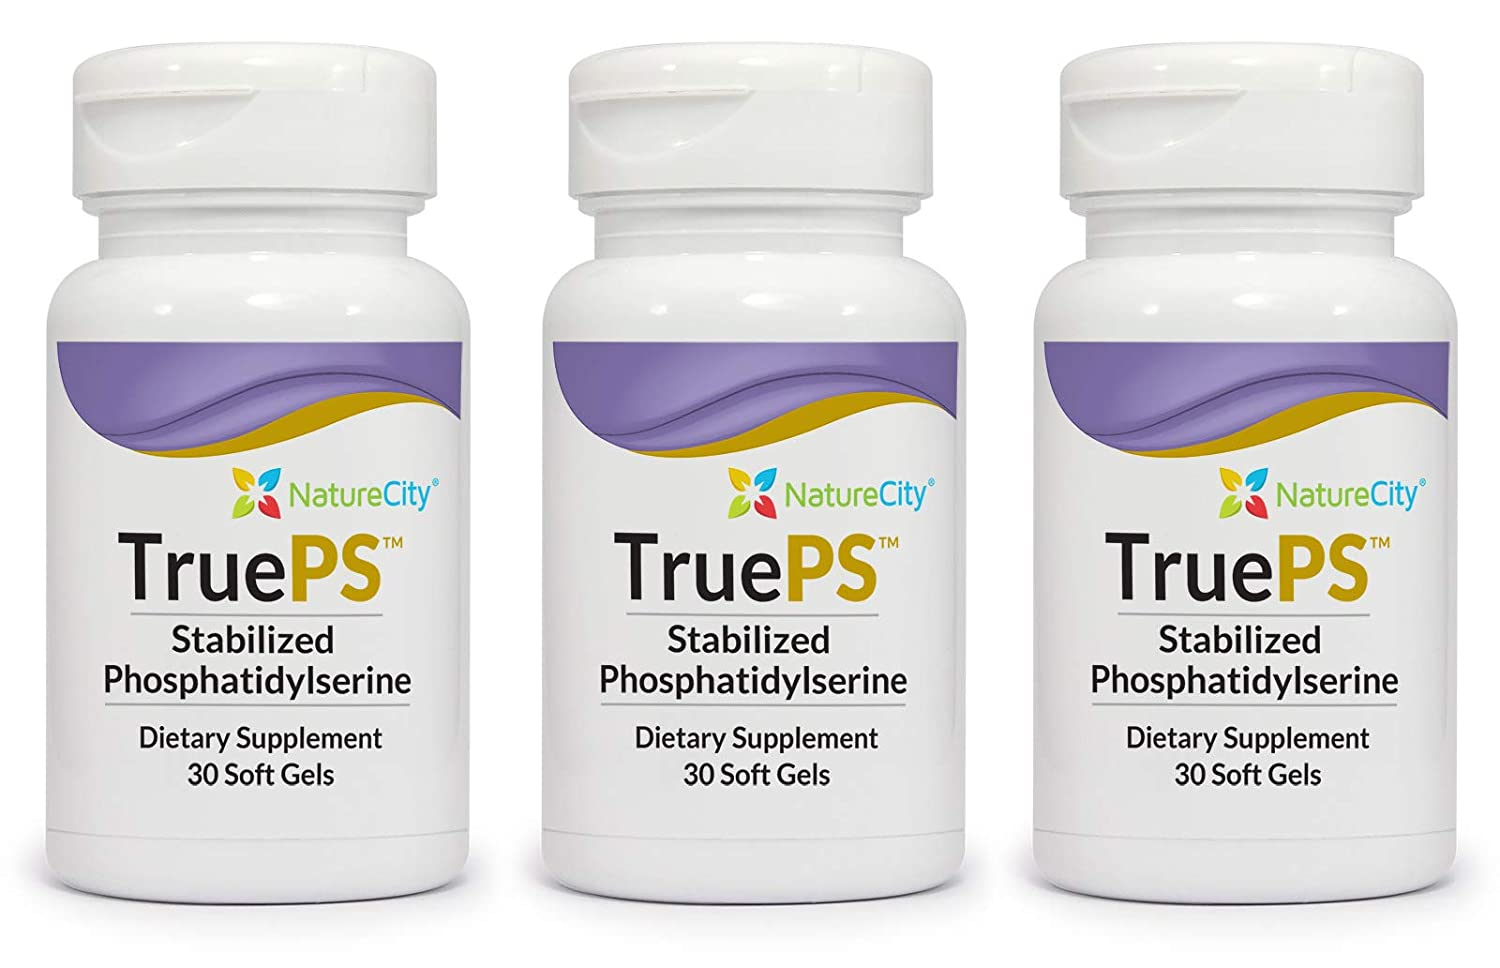 TruePS Soy Free Phosphatidylserine Supplement 3